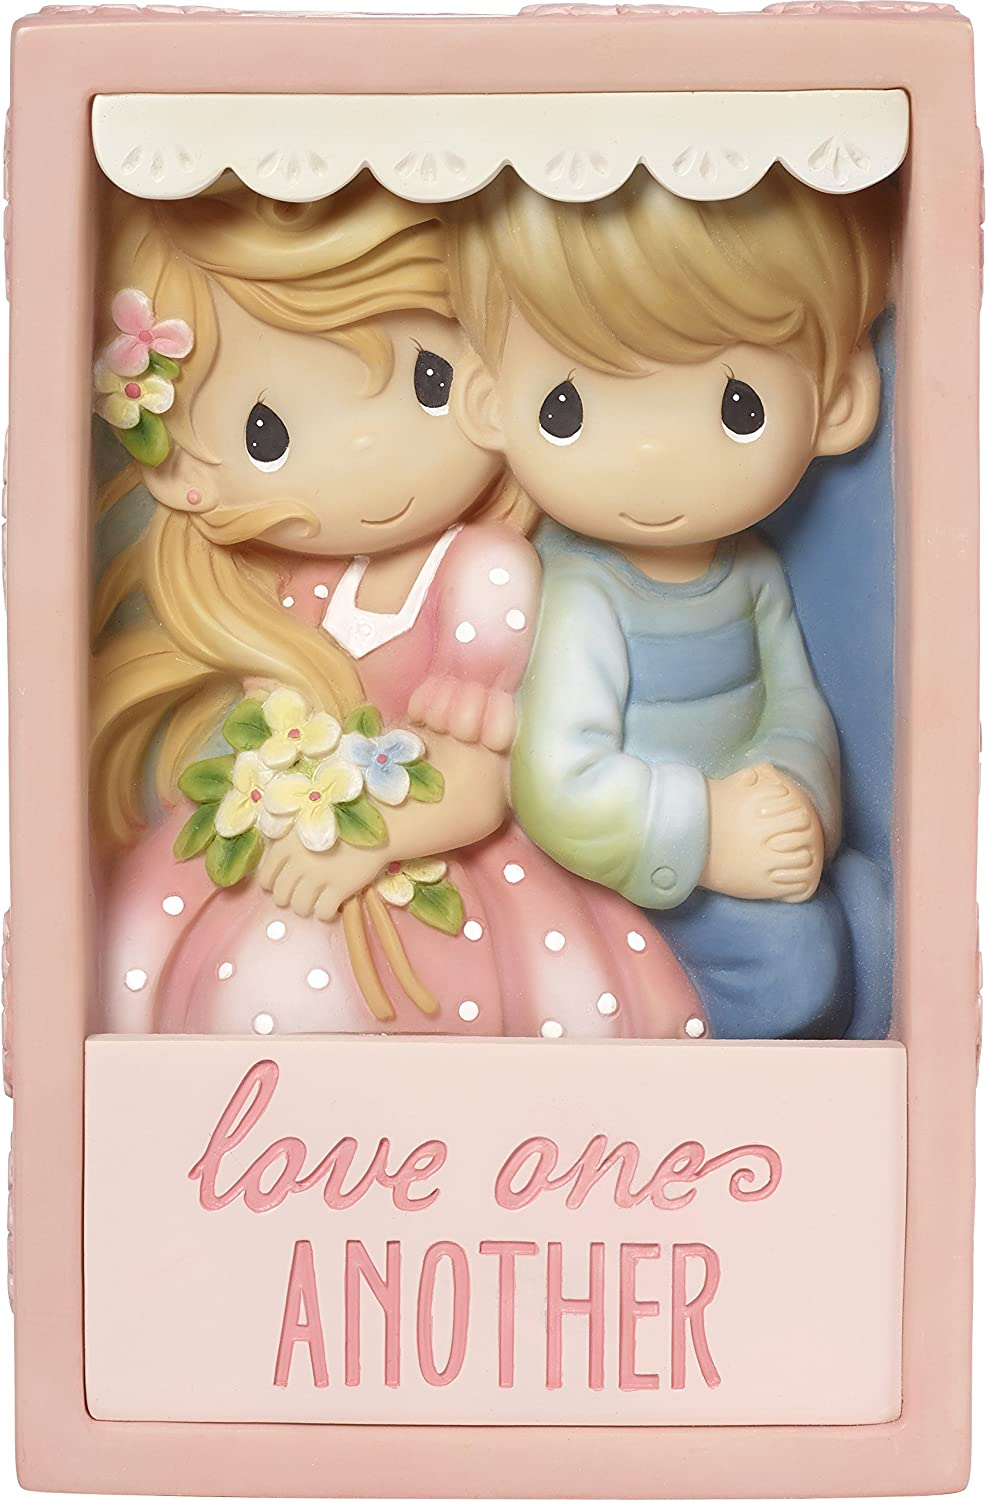 Precious Moments Couple Love One Another Resin Shadow Wall or Destop Box Home Decor 173443